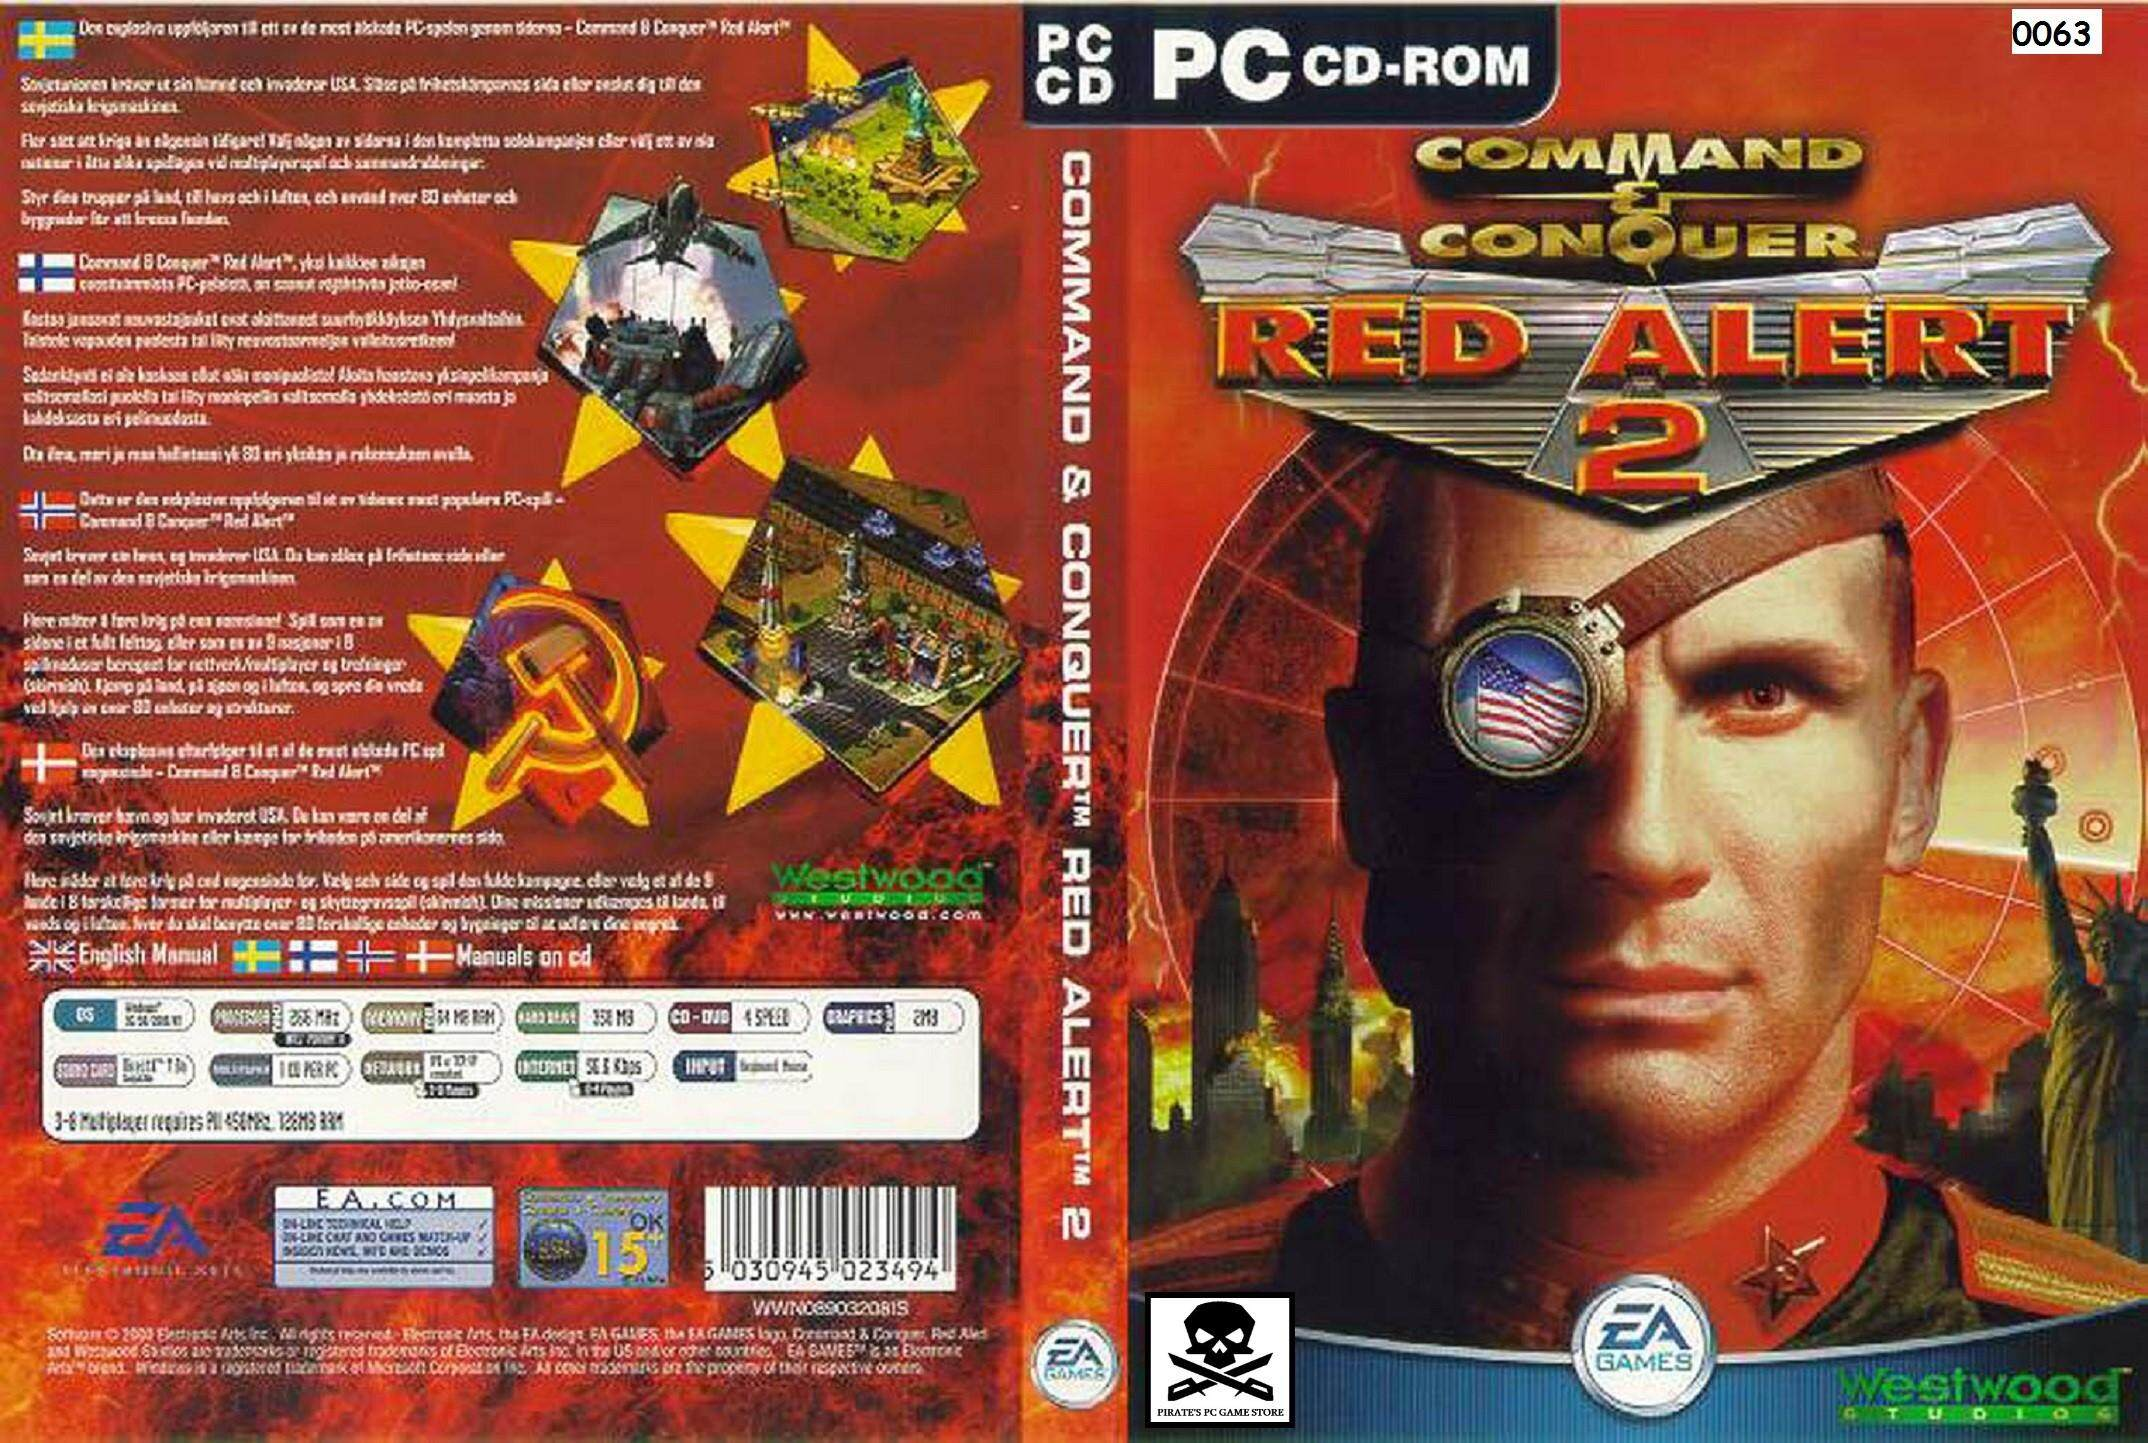 (pc) Command & Conquer Red Alert 2 By Pirates Pc Game Store.